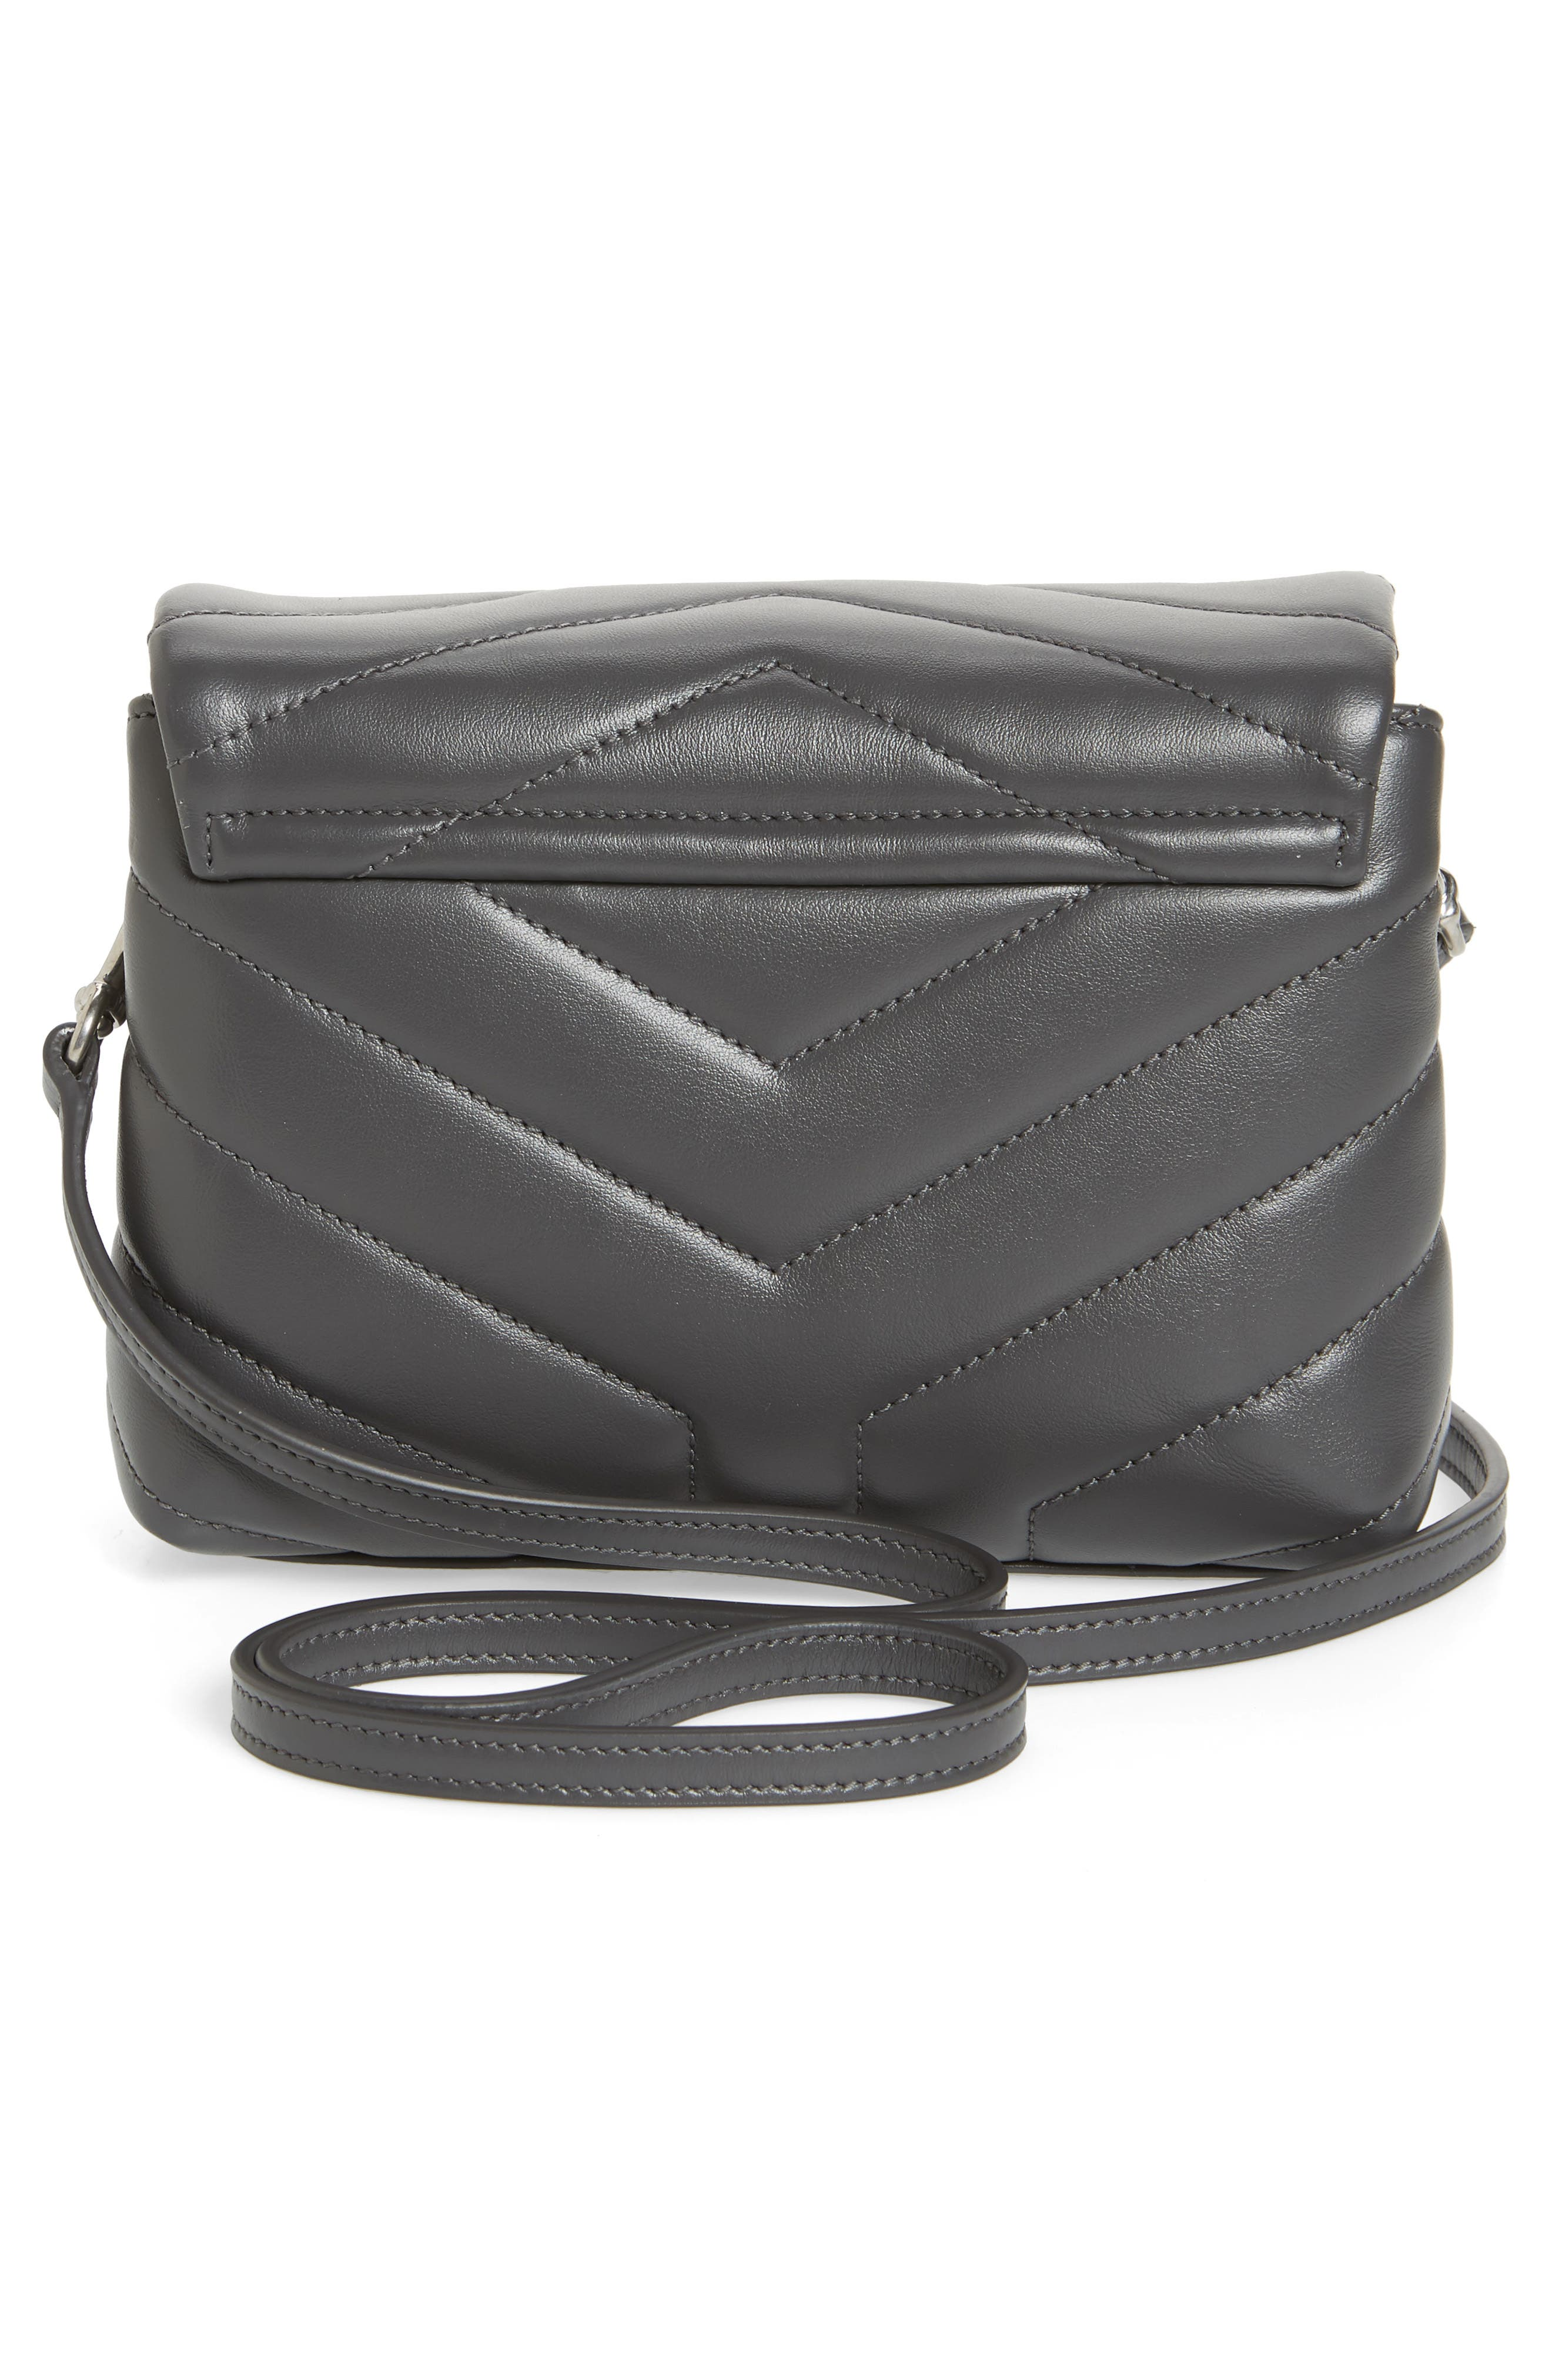 Toy Loulou Calfskin Leather Crossbody Bag,                             Alternate thumbnail 3, color,                             STORM